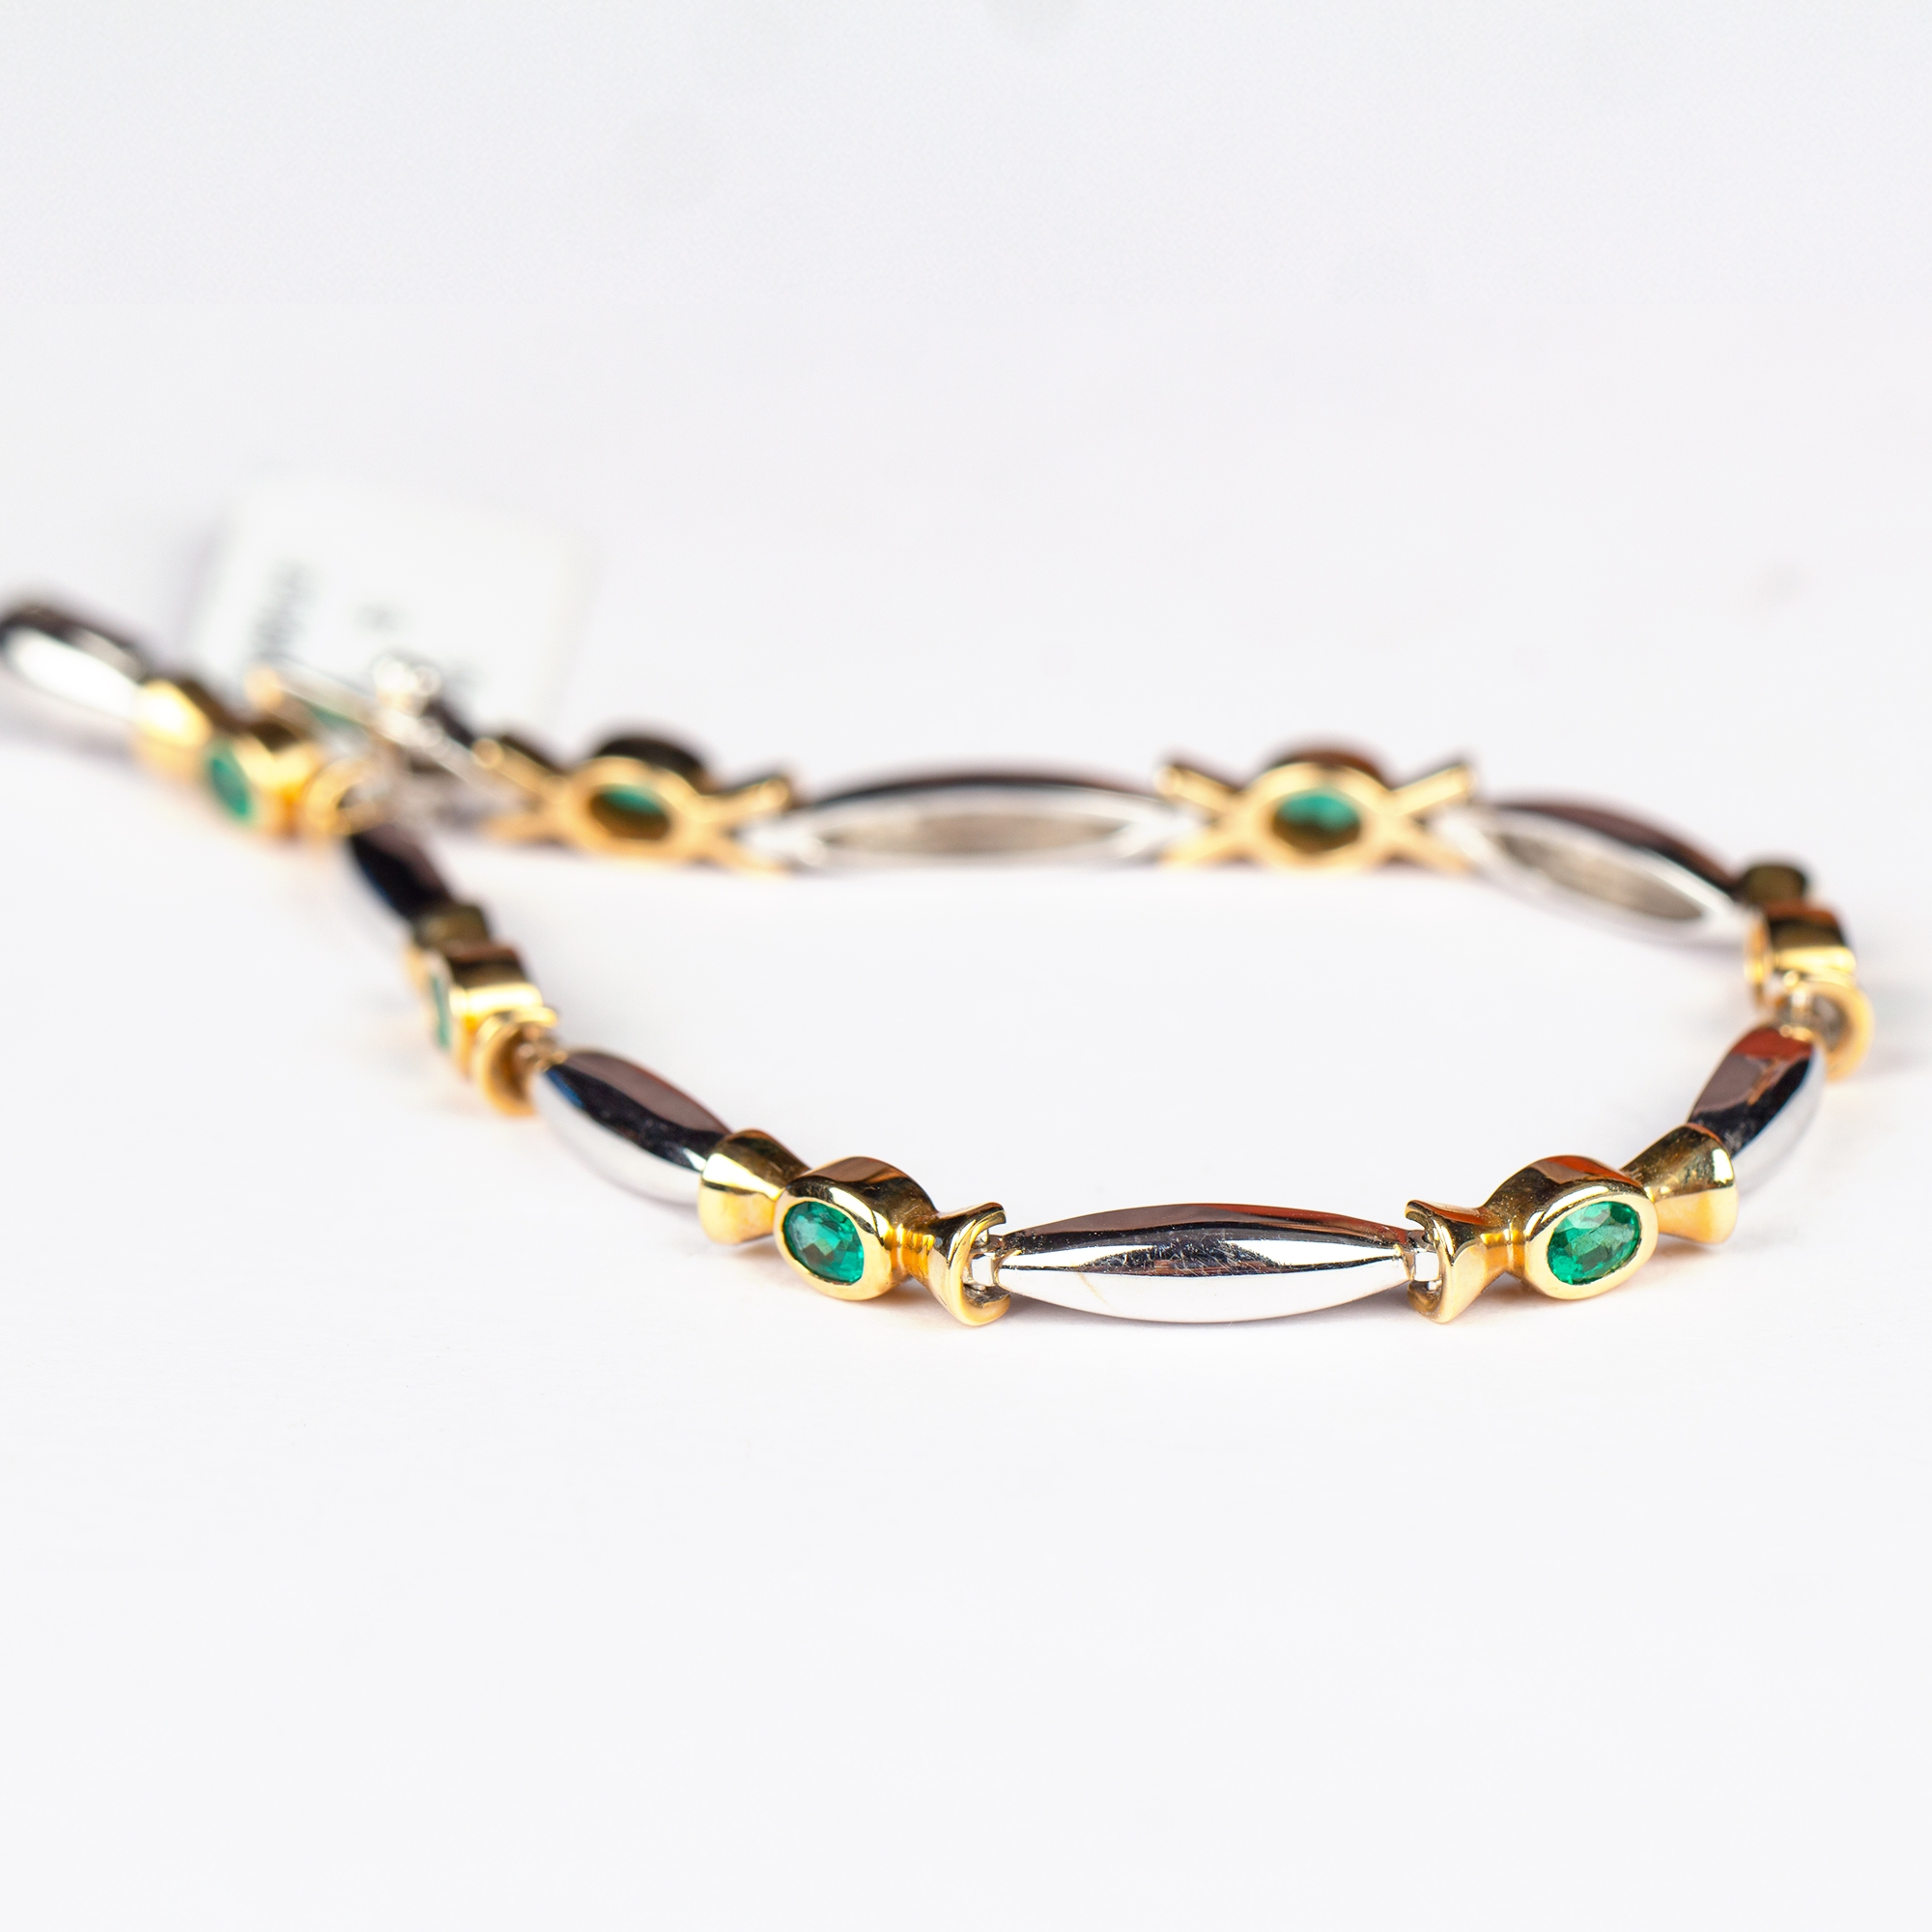 1.50 CT Oval Cut Emerald and Gold Minimal Link Bracelet